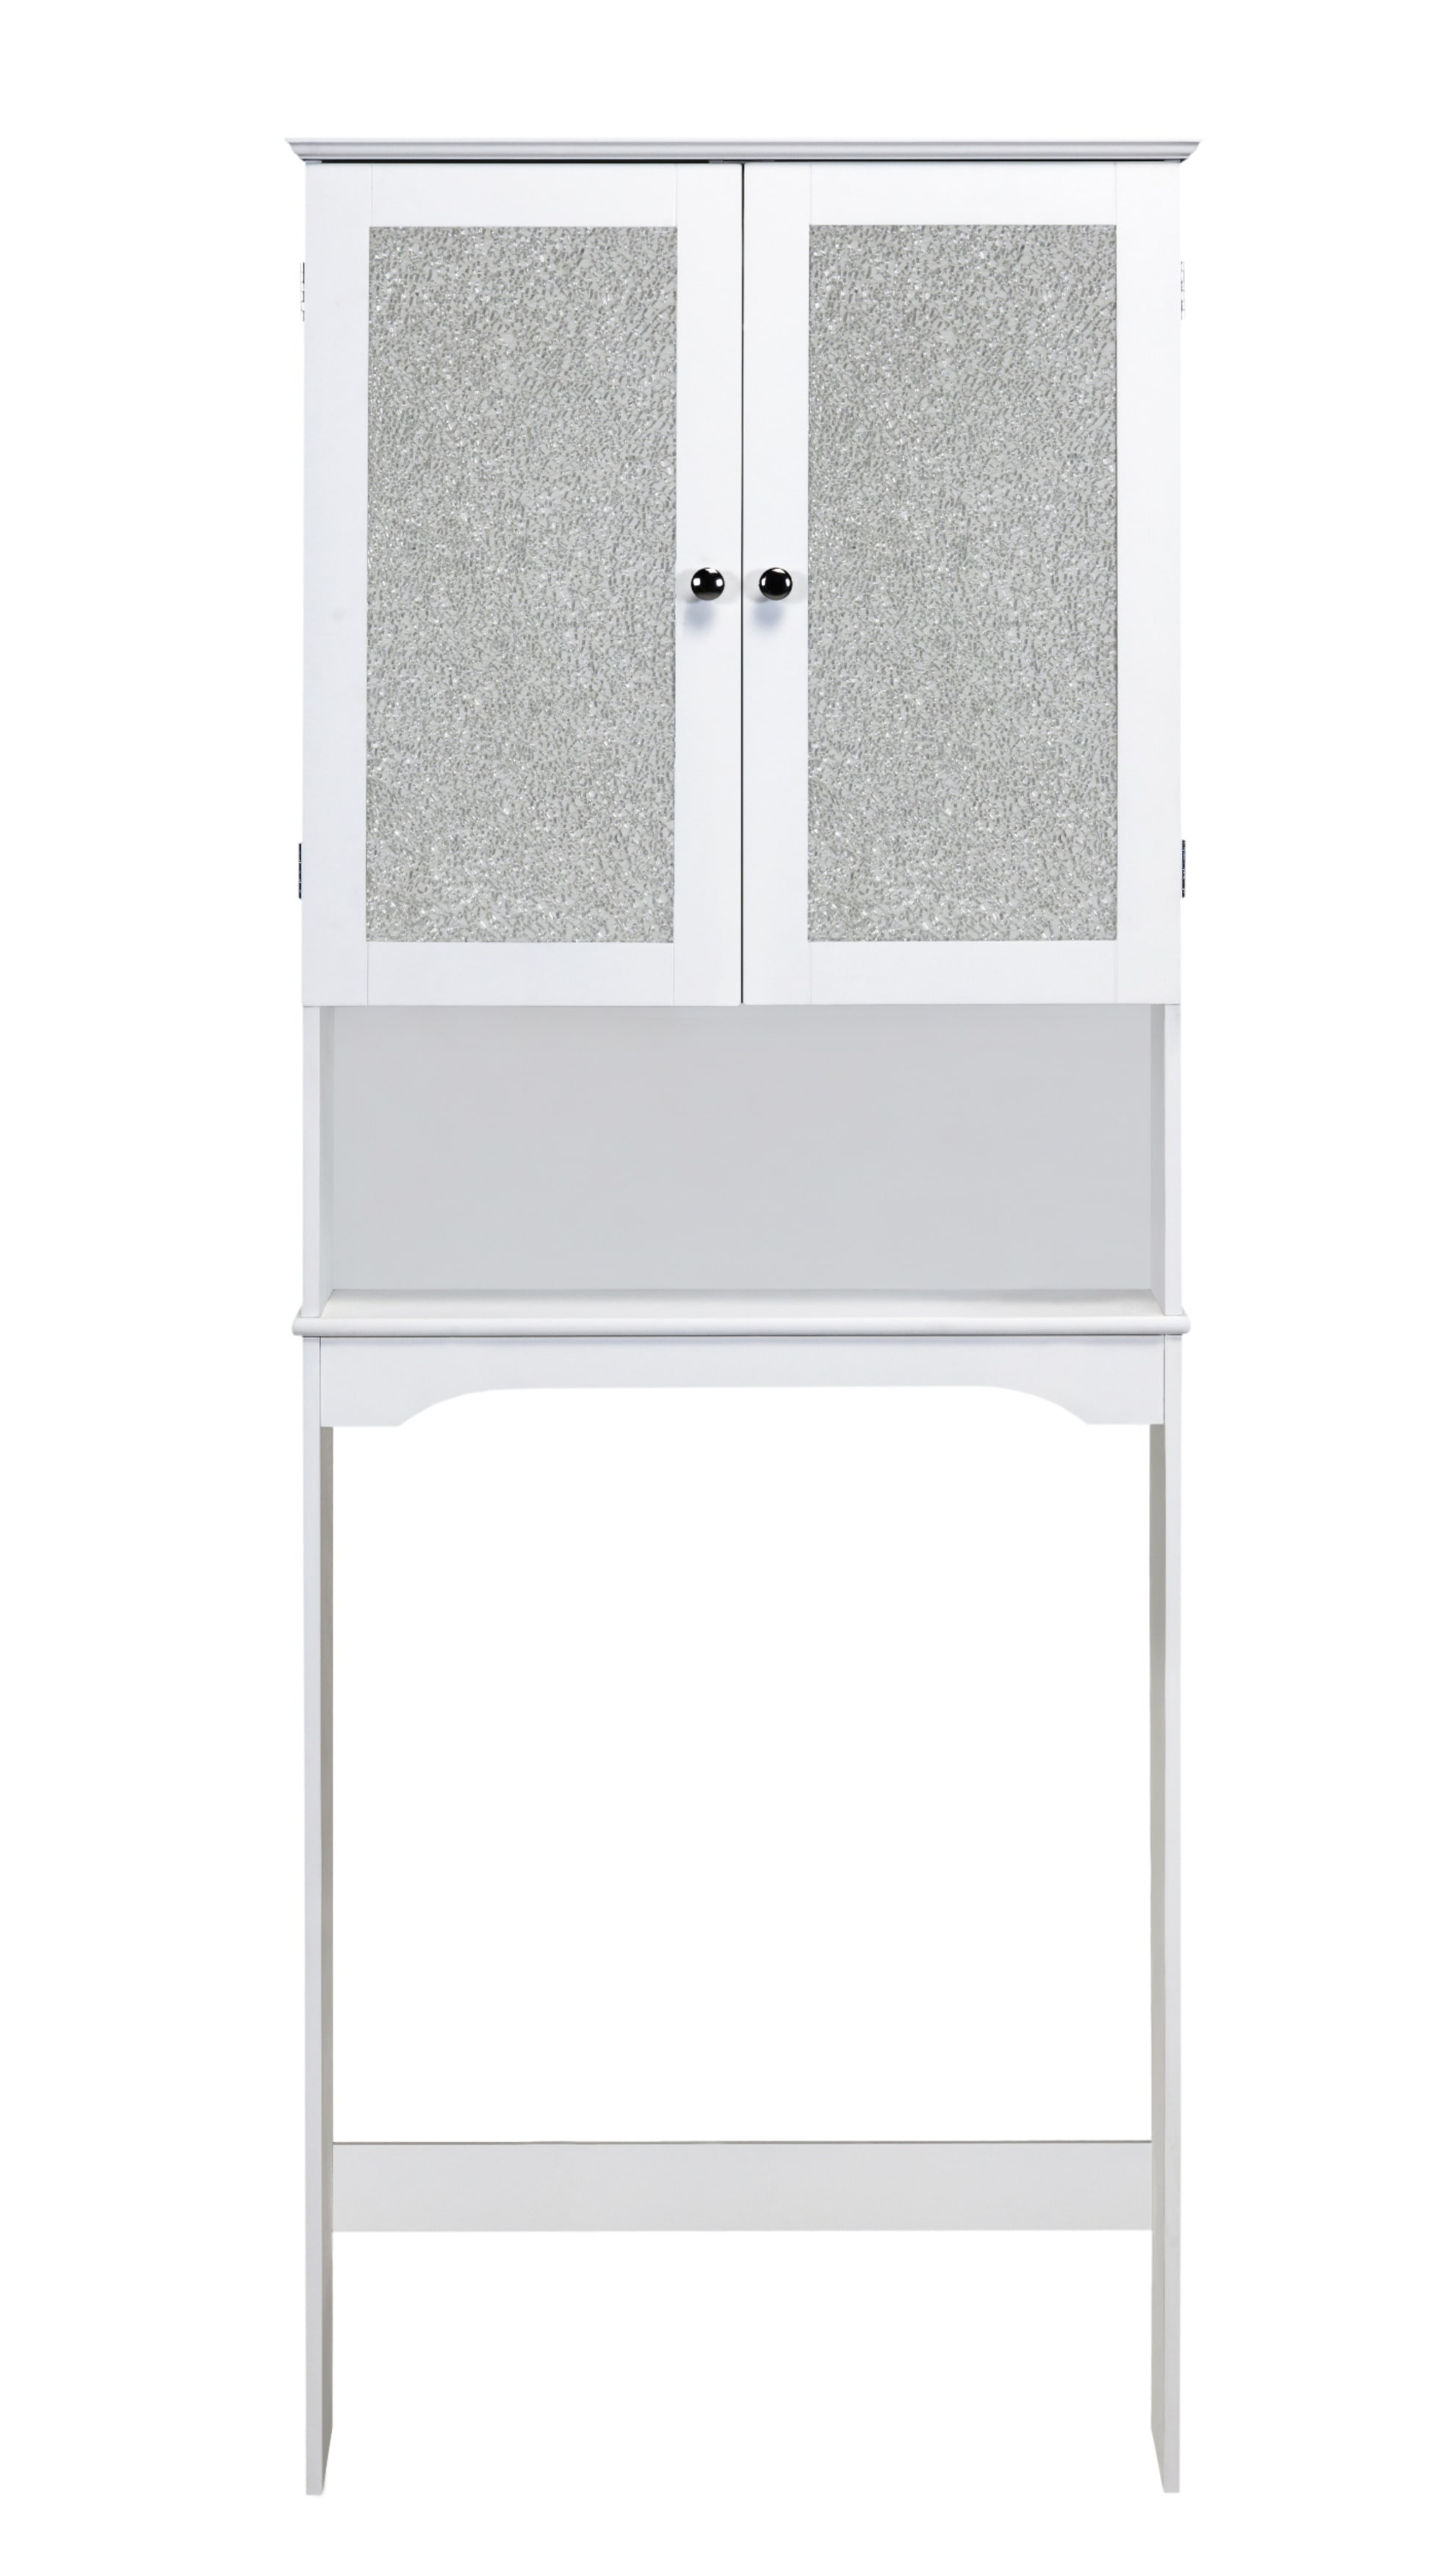 Fifth Avenue Mosaic Glass Doors Space Saver  Cabinet